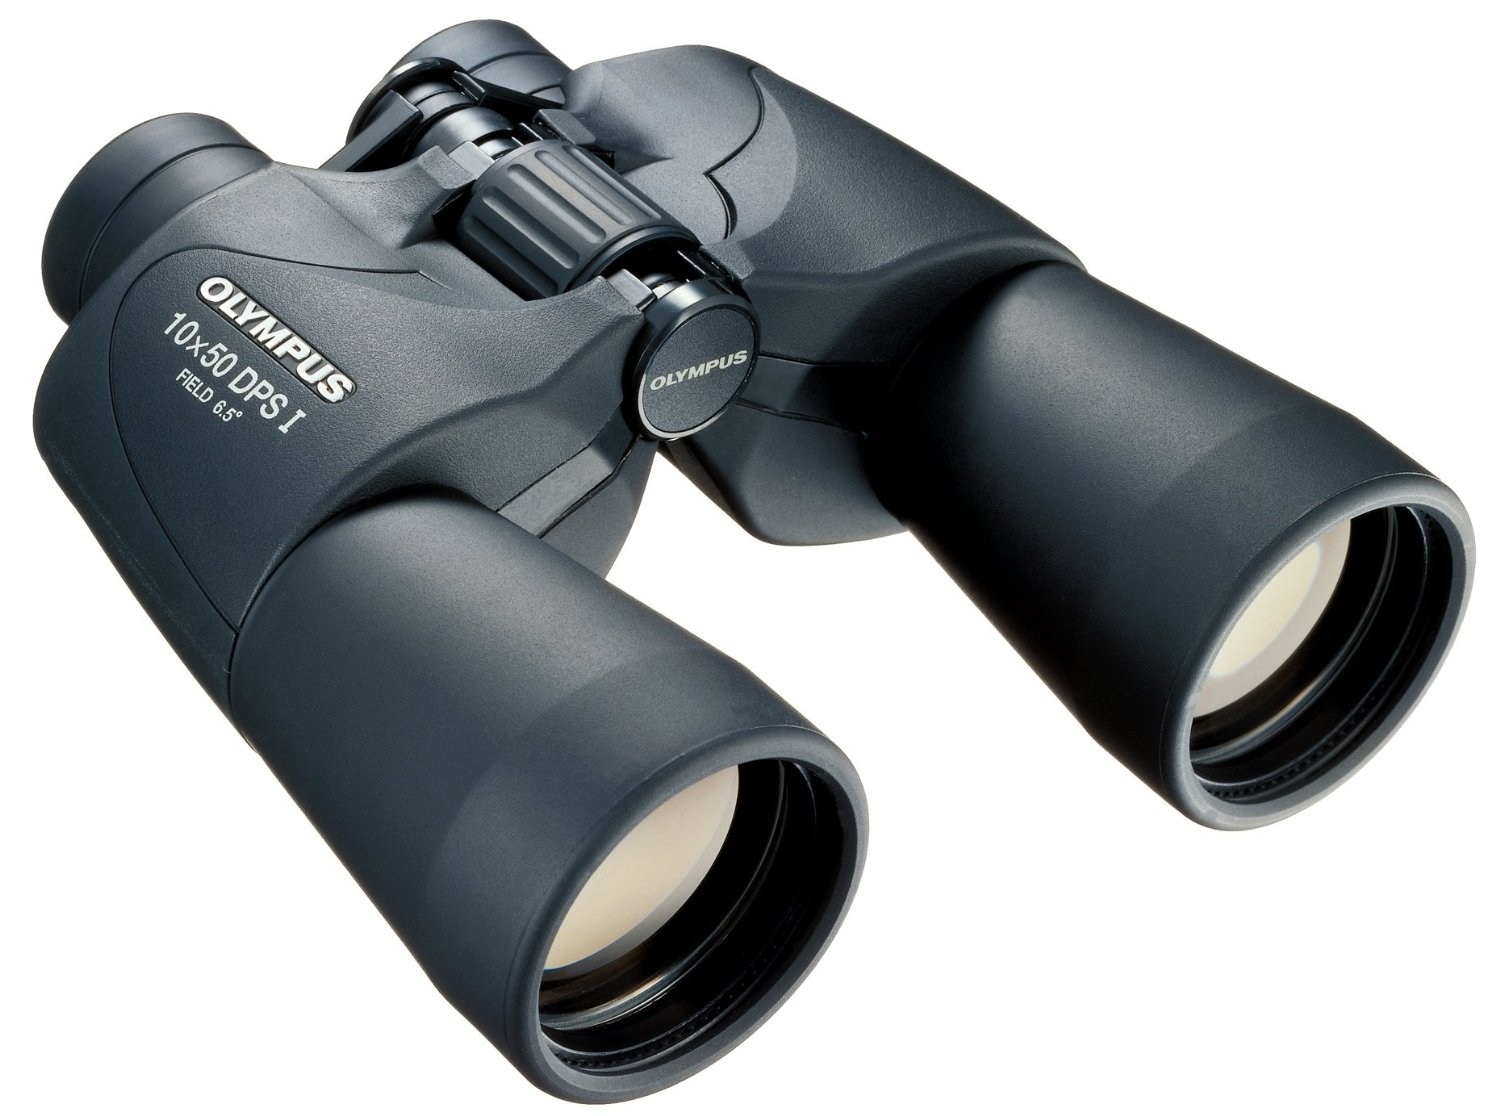 olympus 10x50 dps i binoculars review: best binoculars for long distance viewing